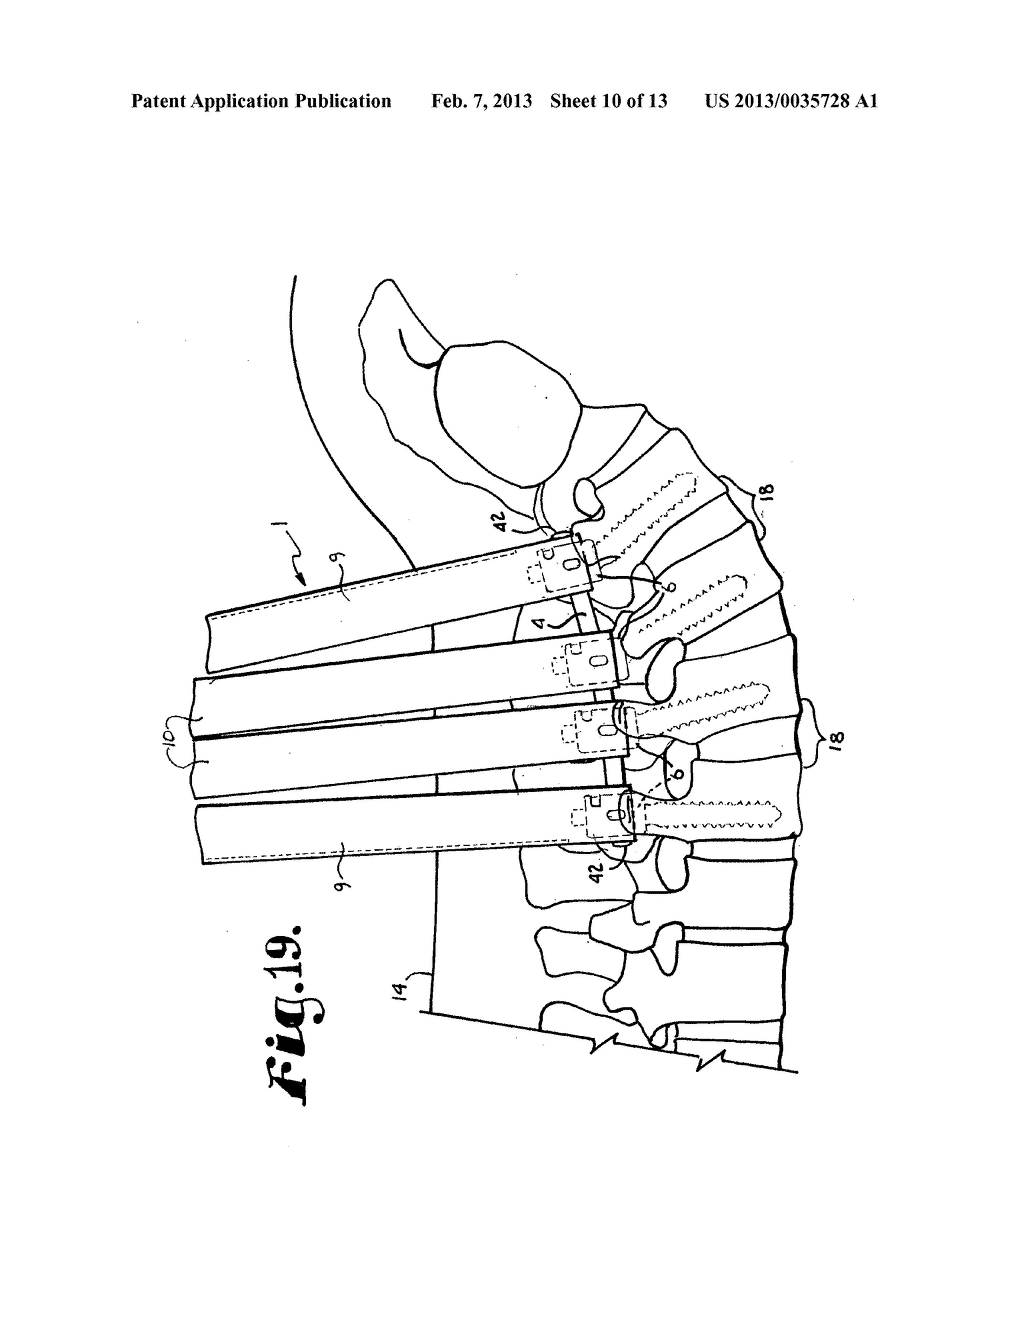 Orthopedic implant rod reduction tool set and method - diagram, schematic, and image 11